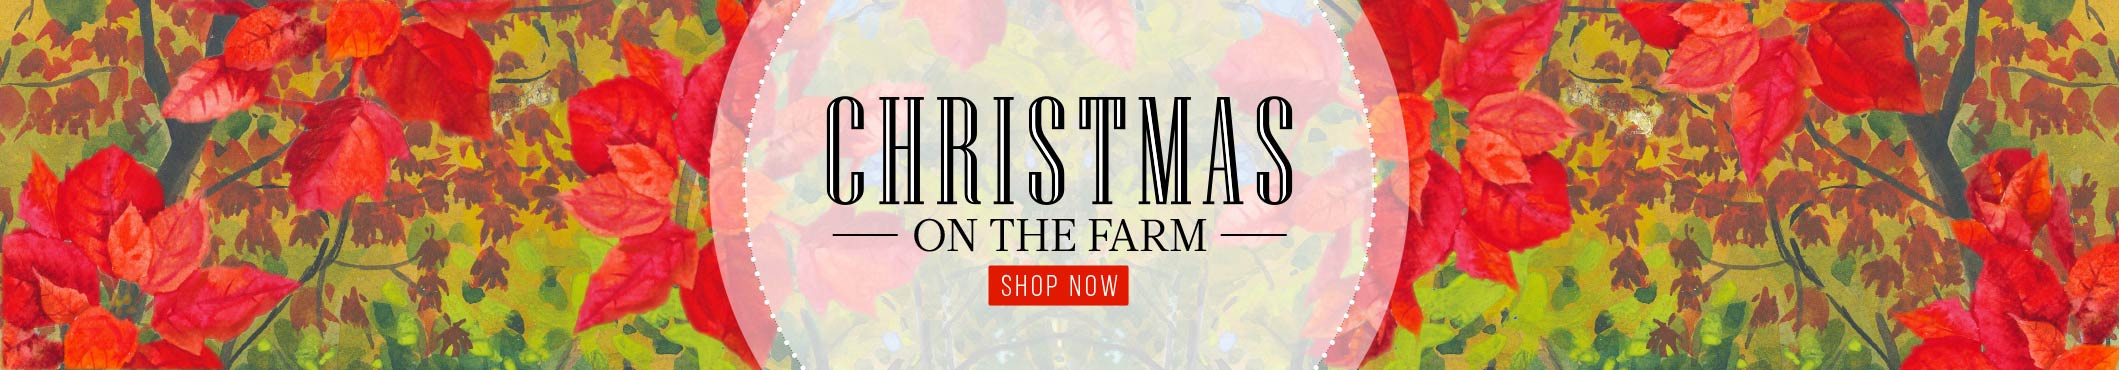 Christmas on the farm by Flowers for Everyone